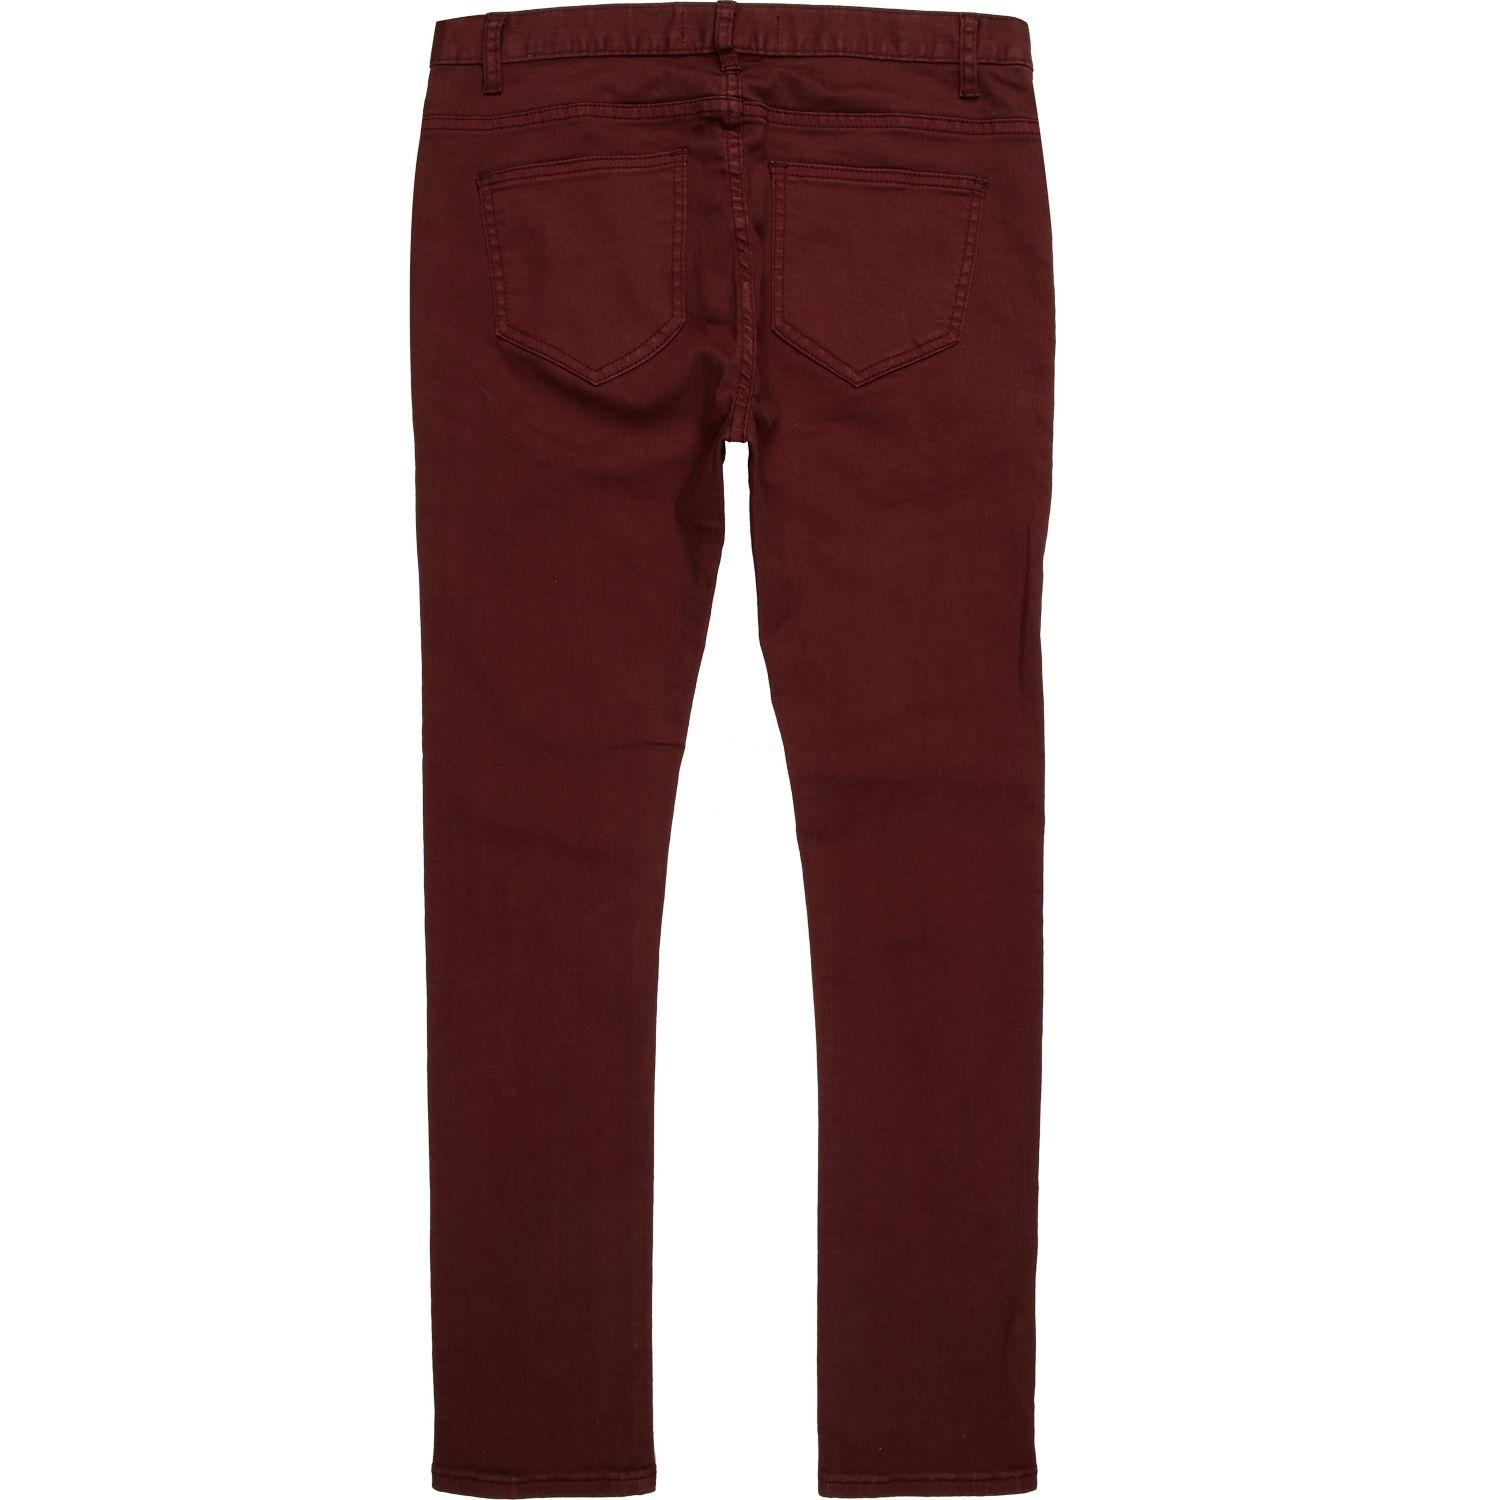 hindu single men in red river Home men's old west styles  close outs men's fashions find something unique in our men's close out department here you will find not only sale items but discontinued items.